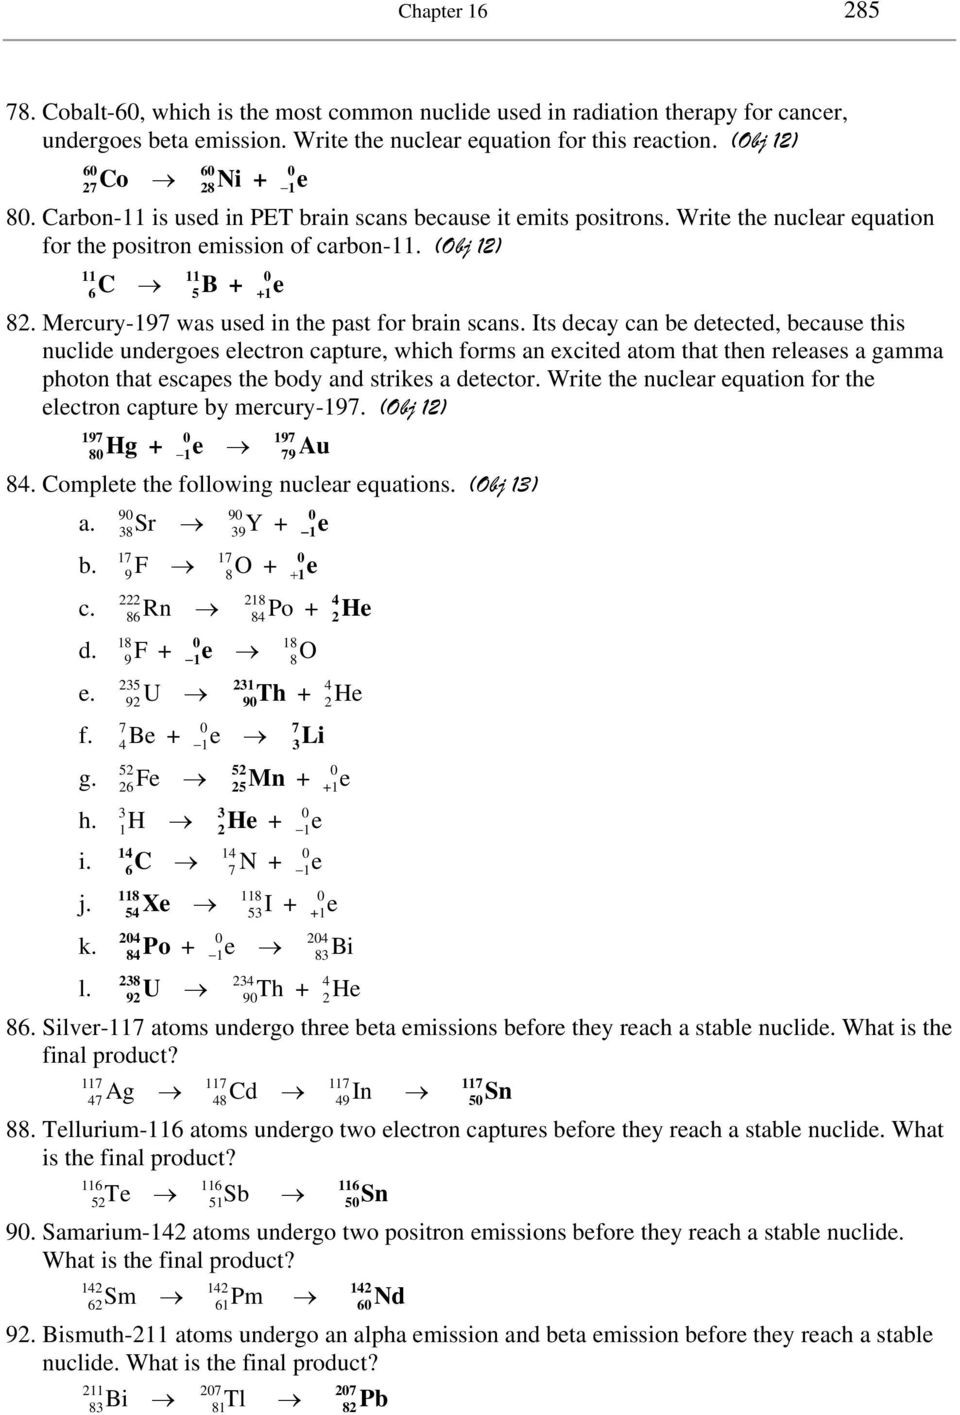 Nuclear Decay Worksheet Answers Key Chapter 16 Nuclear Chemistry Pdf Free Download